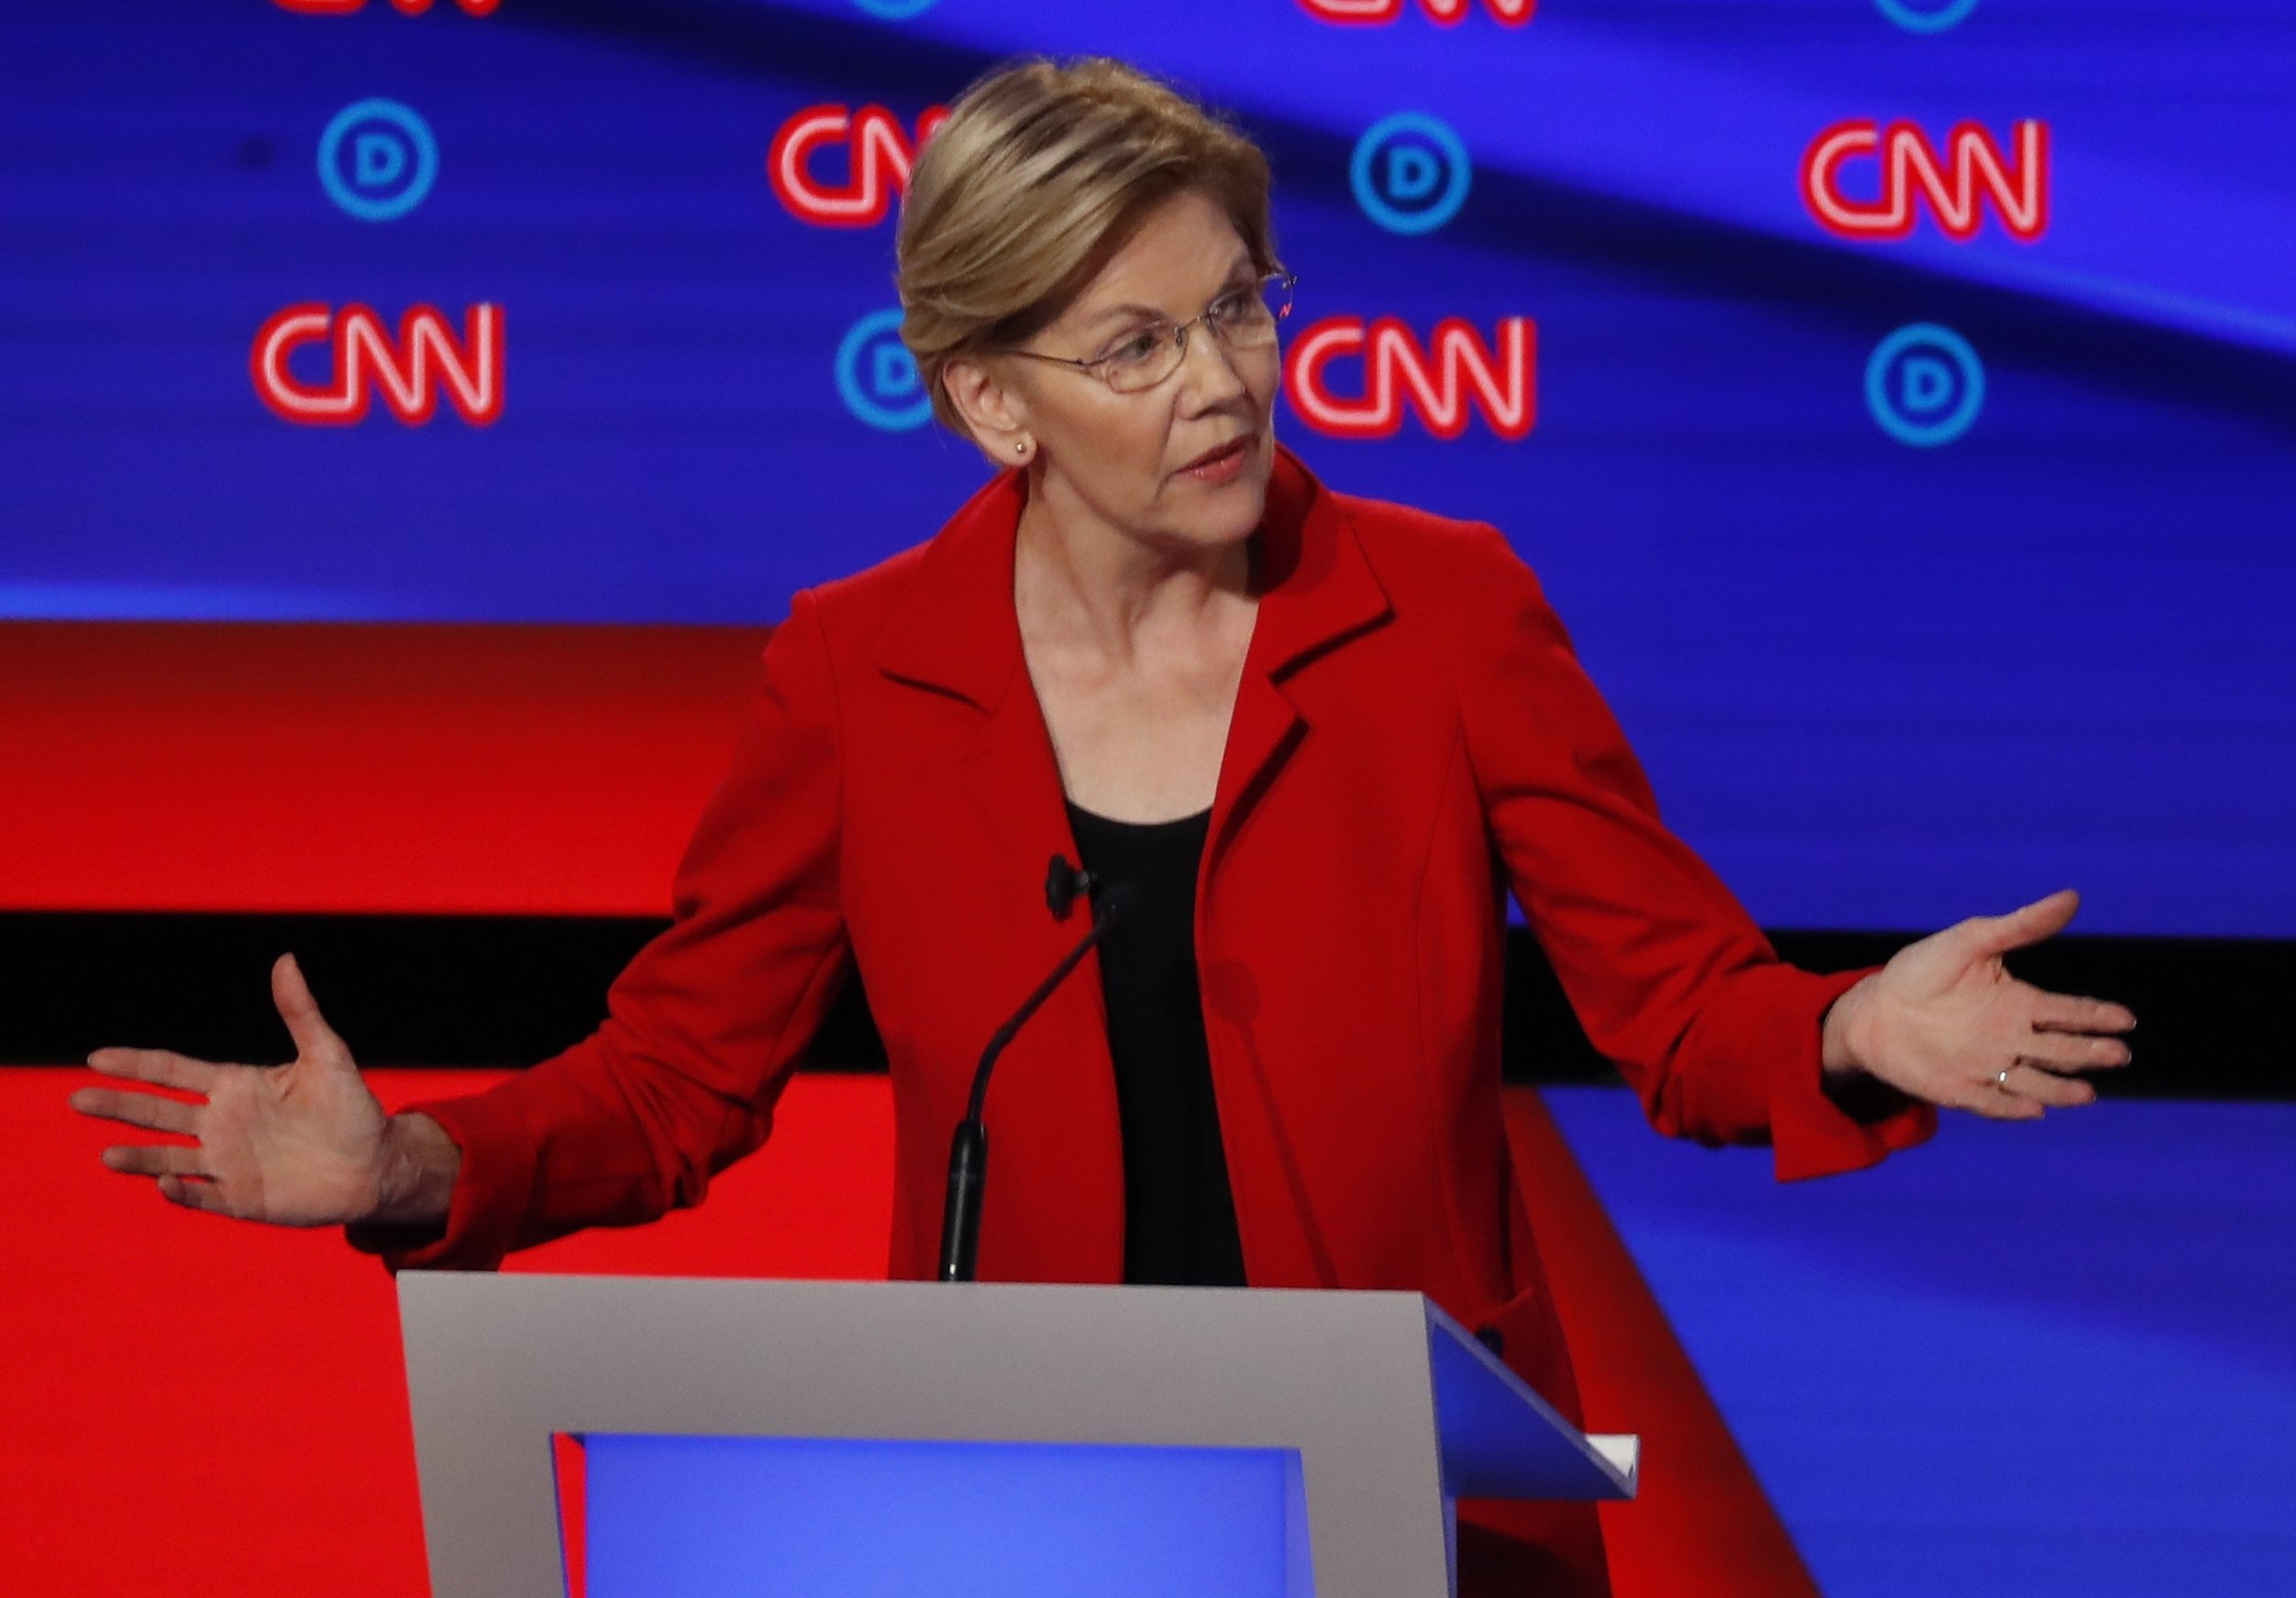 Sen. Elizabeth Warren, D-Mass., participates in the first of two Democratic presidential primary debates hosted by CNN in the Fox Theatre in Detroit on July 30, 2019.